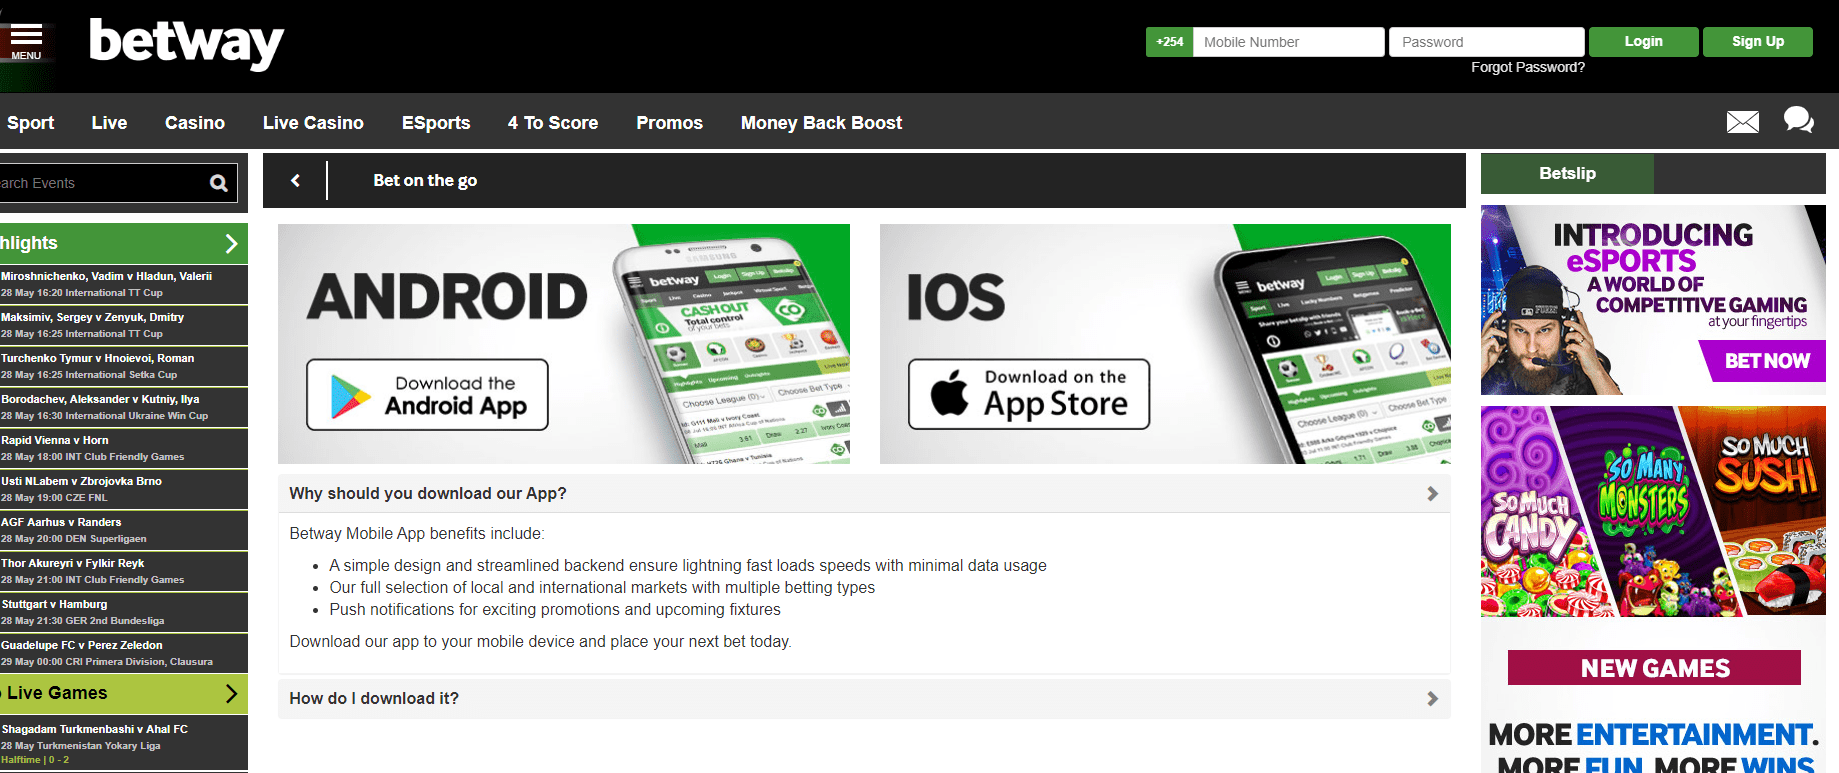 Betway Kenya Mobile App Download